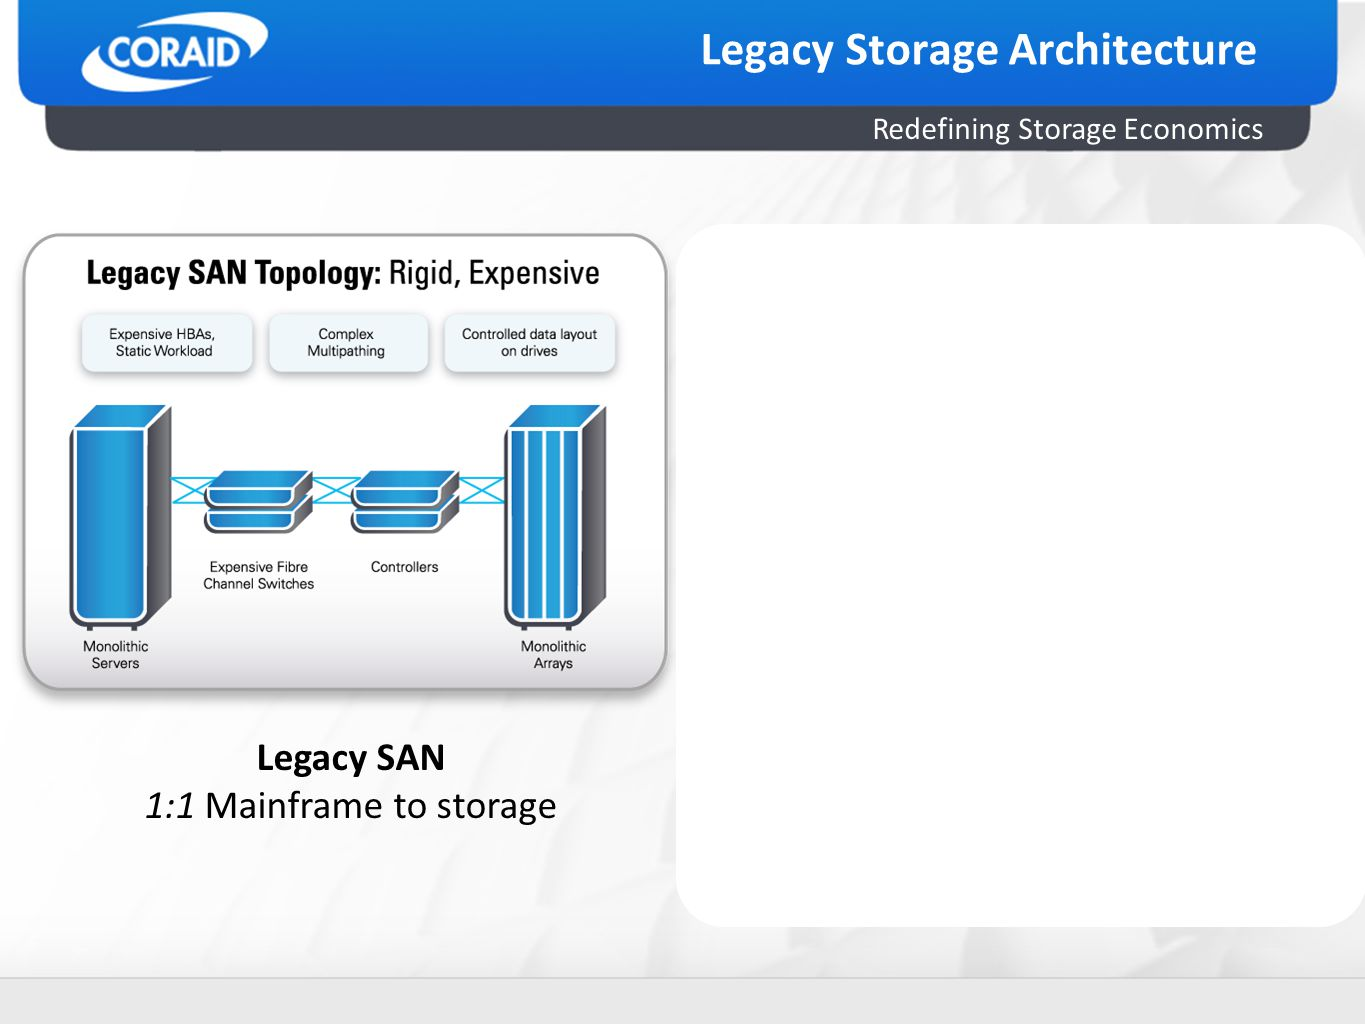 Redefining Storage Economics Legacy Storage Architecture Legacy SAN 1:1 Mainframe to storage Today's SAN Many:1 Servers to storage Many:1 Virtual to physical servers